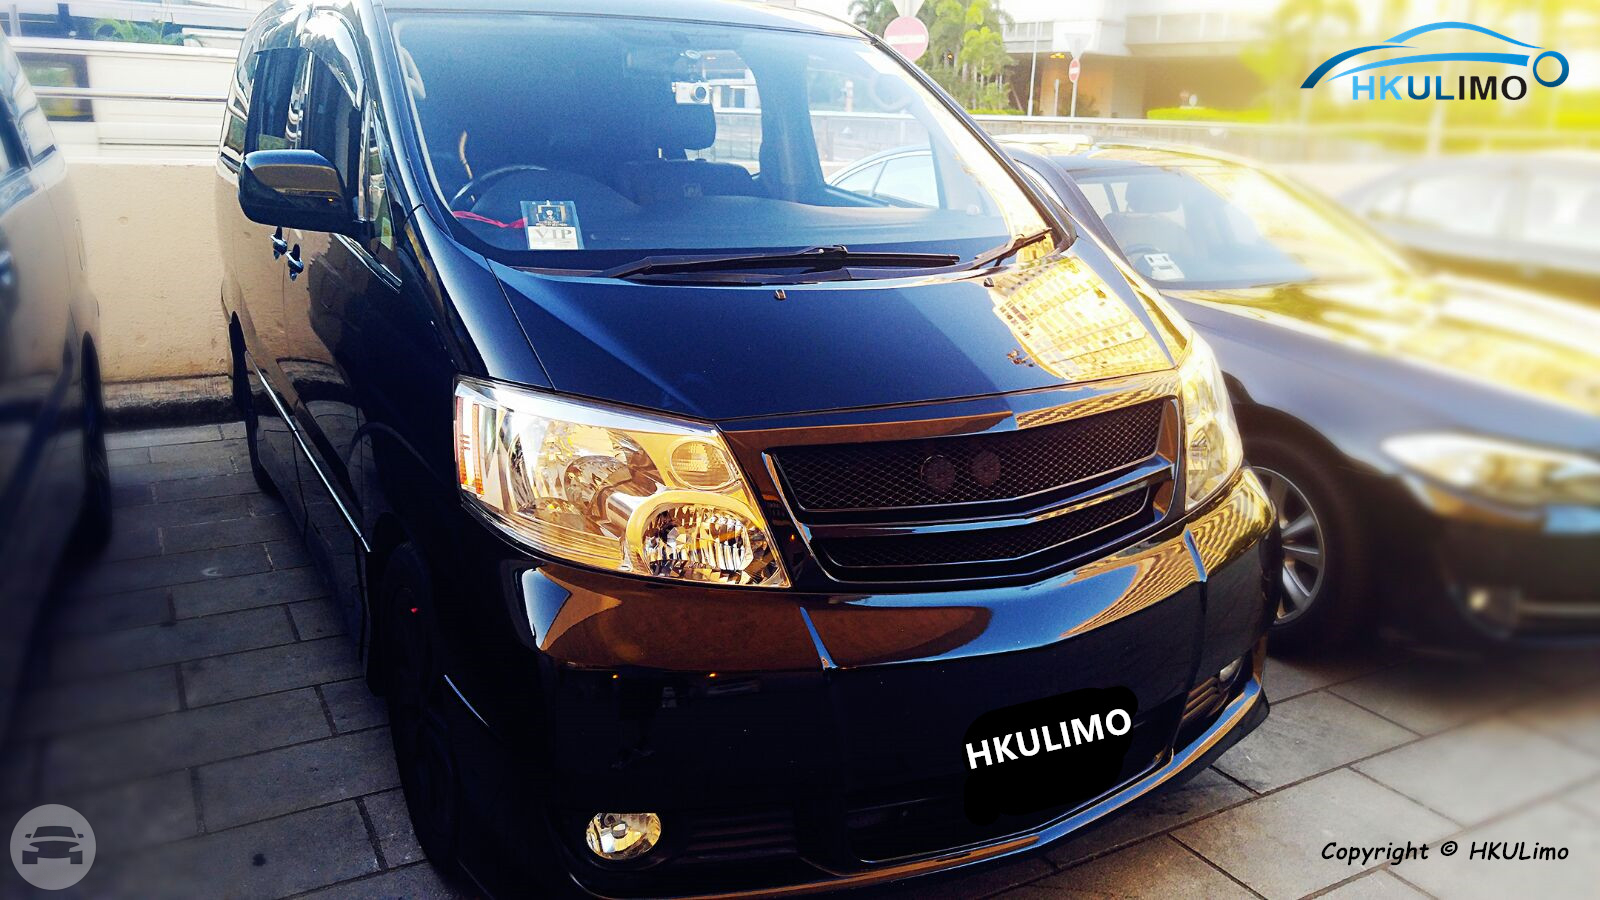 Toyota Alphard Van / Tai Po District, Hong Kong   / Hourly HKD 0.00